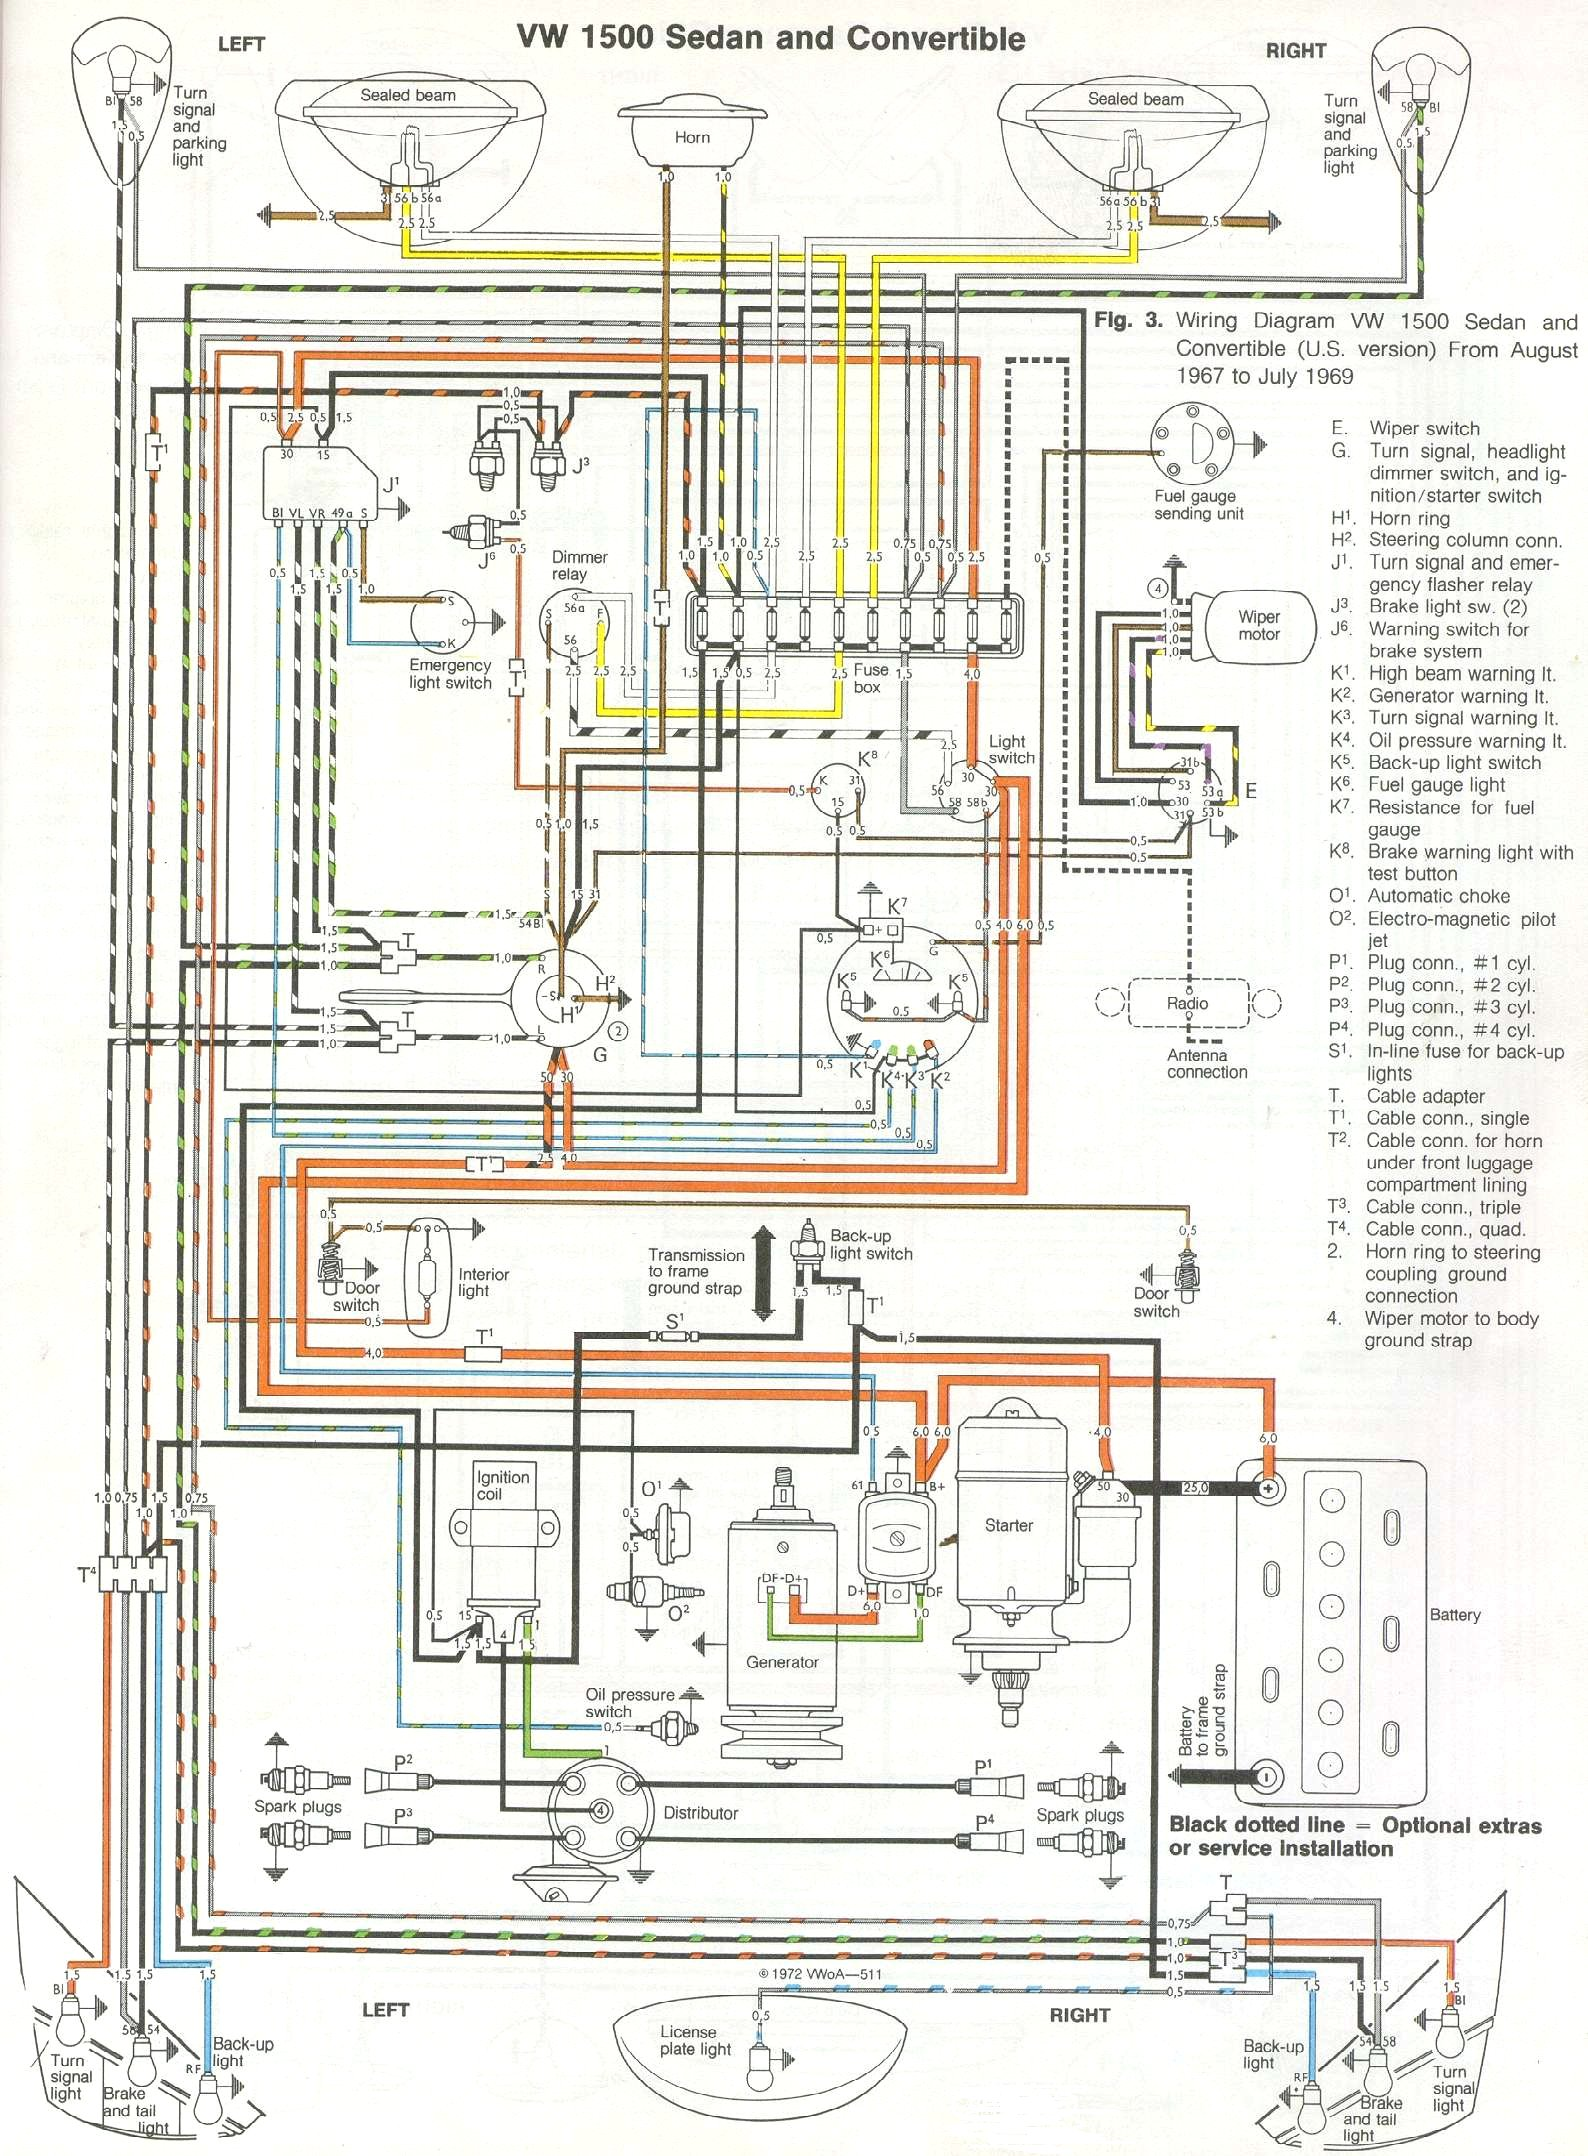 1969 71 beetle wiring diagram thegoldenbug com 68 VW Wiring Diagram Column 68 VW Beetle Wiring Diagram